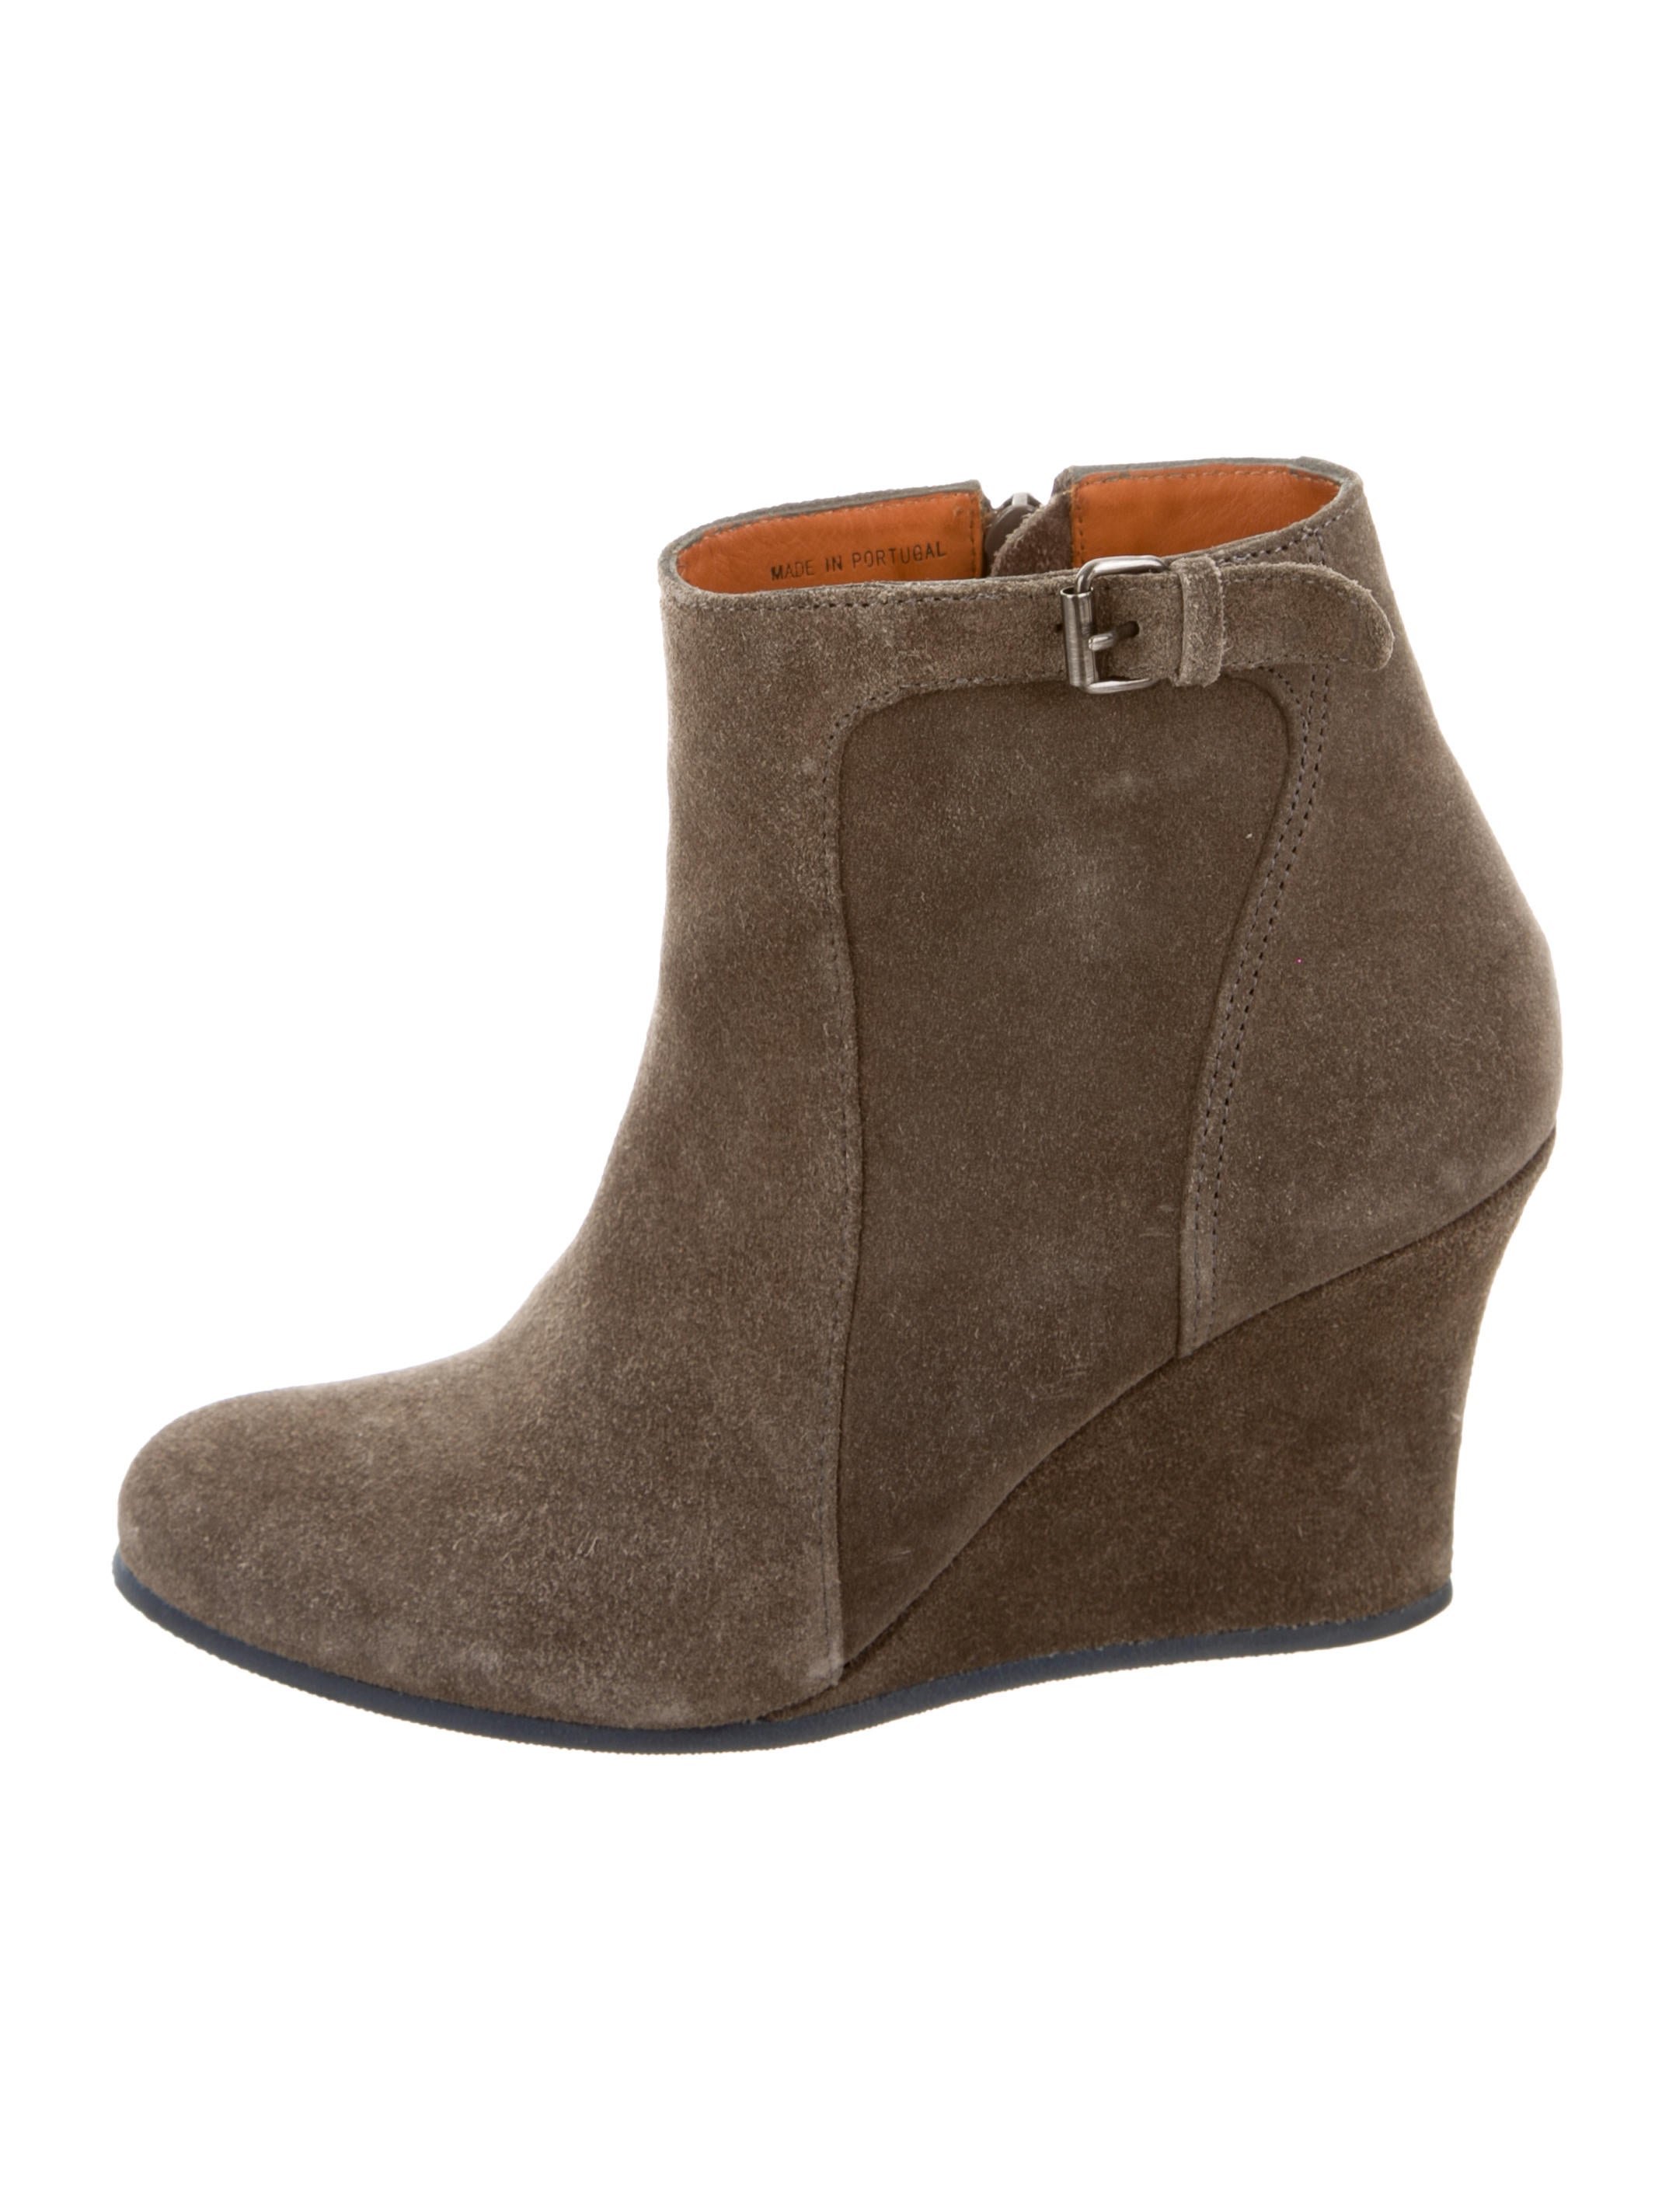 Shop suede wedge bootie at Neiman Marcus, where you will find free shipping on the latest in fashion from top designers.